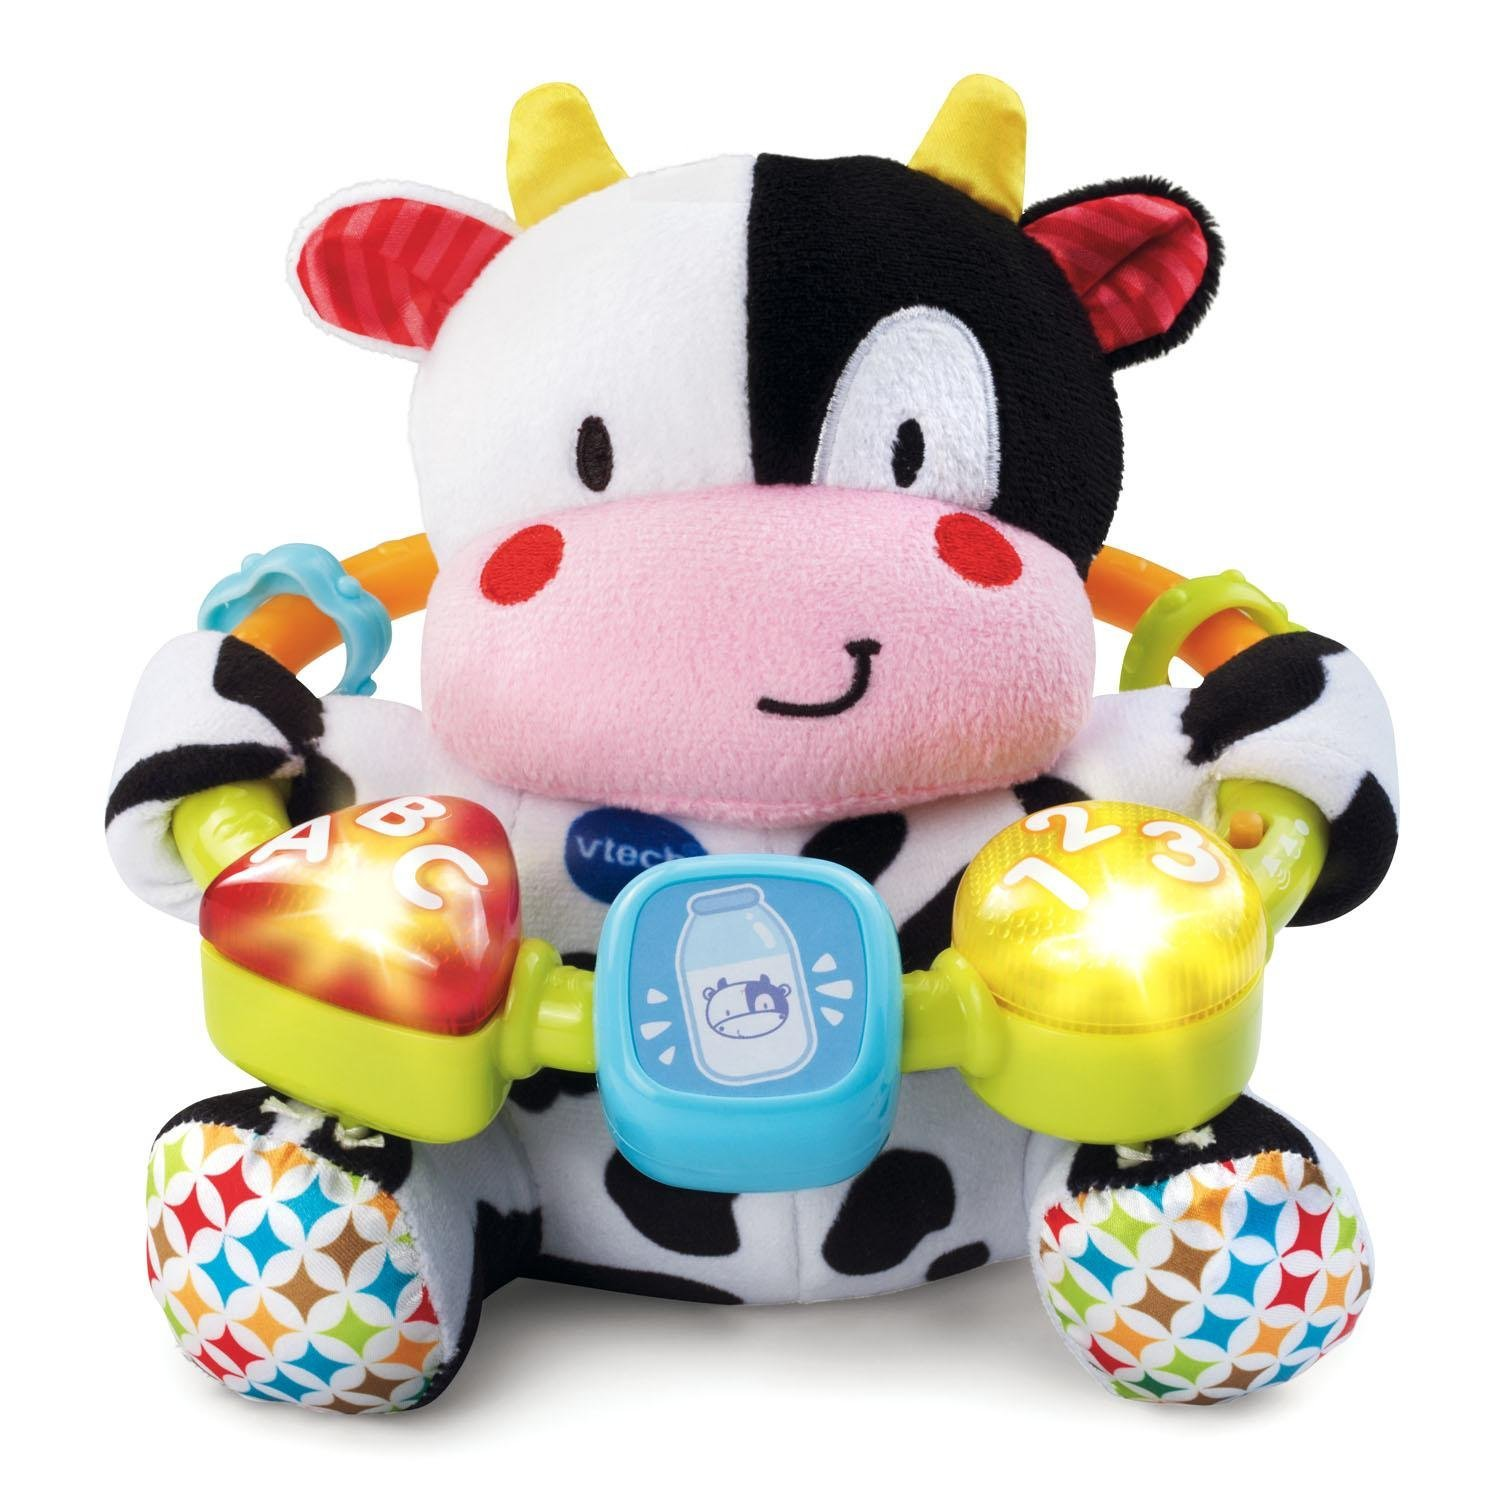 Toys For Babies : Amazon vtech baby lil critters moosical beads toys